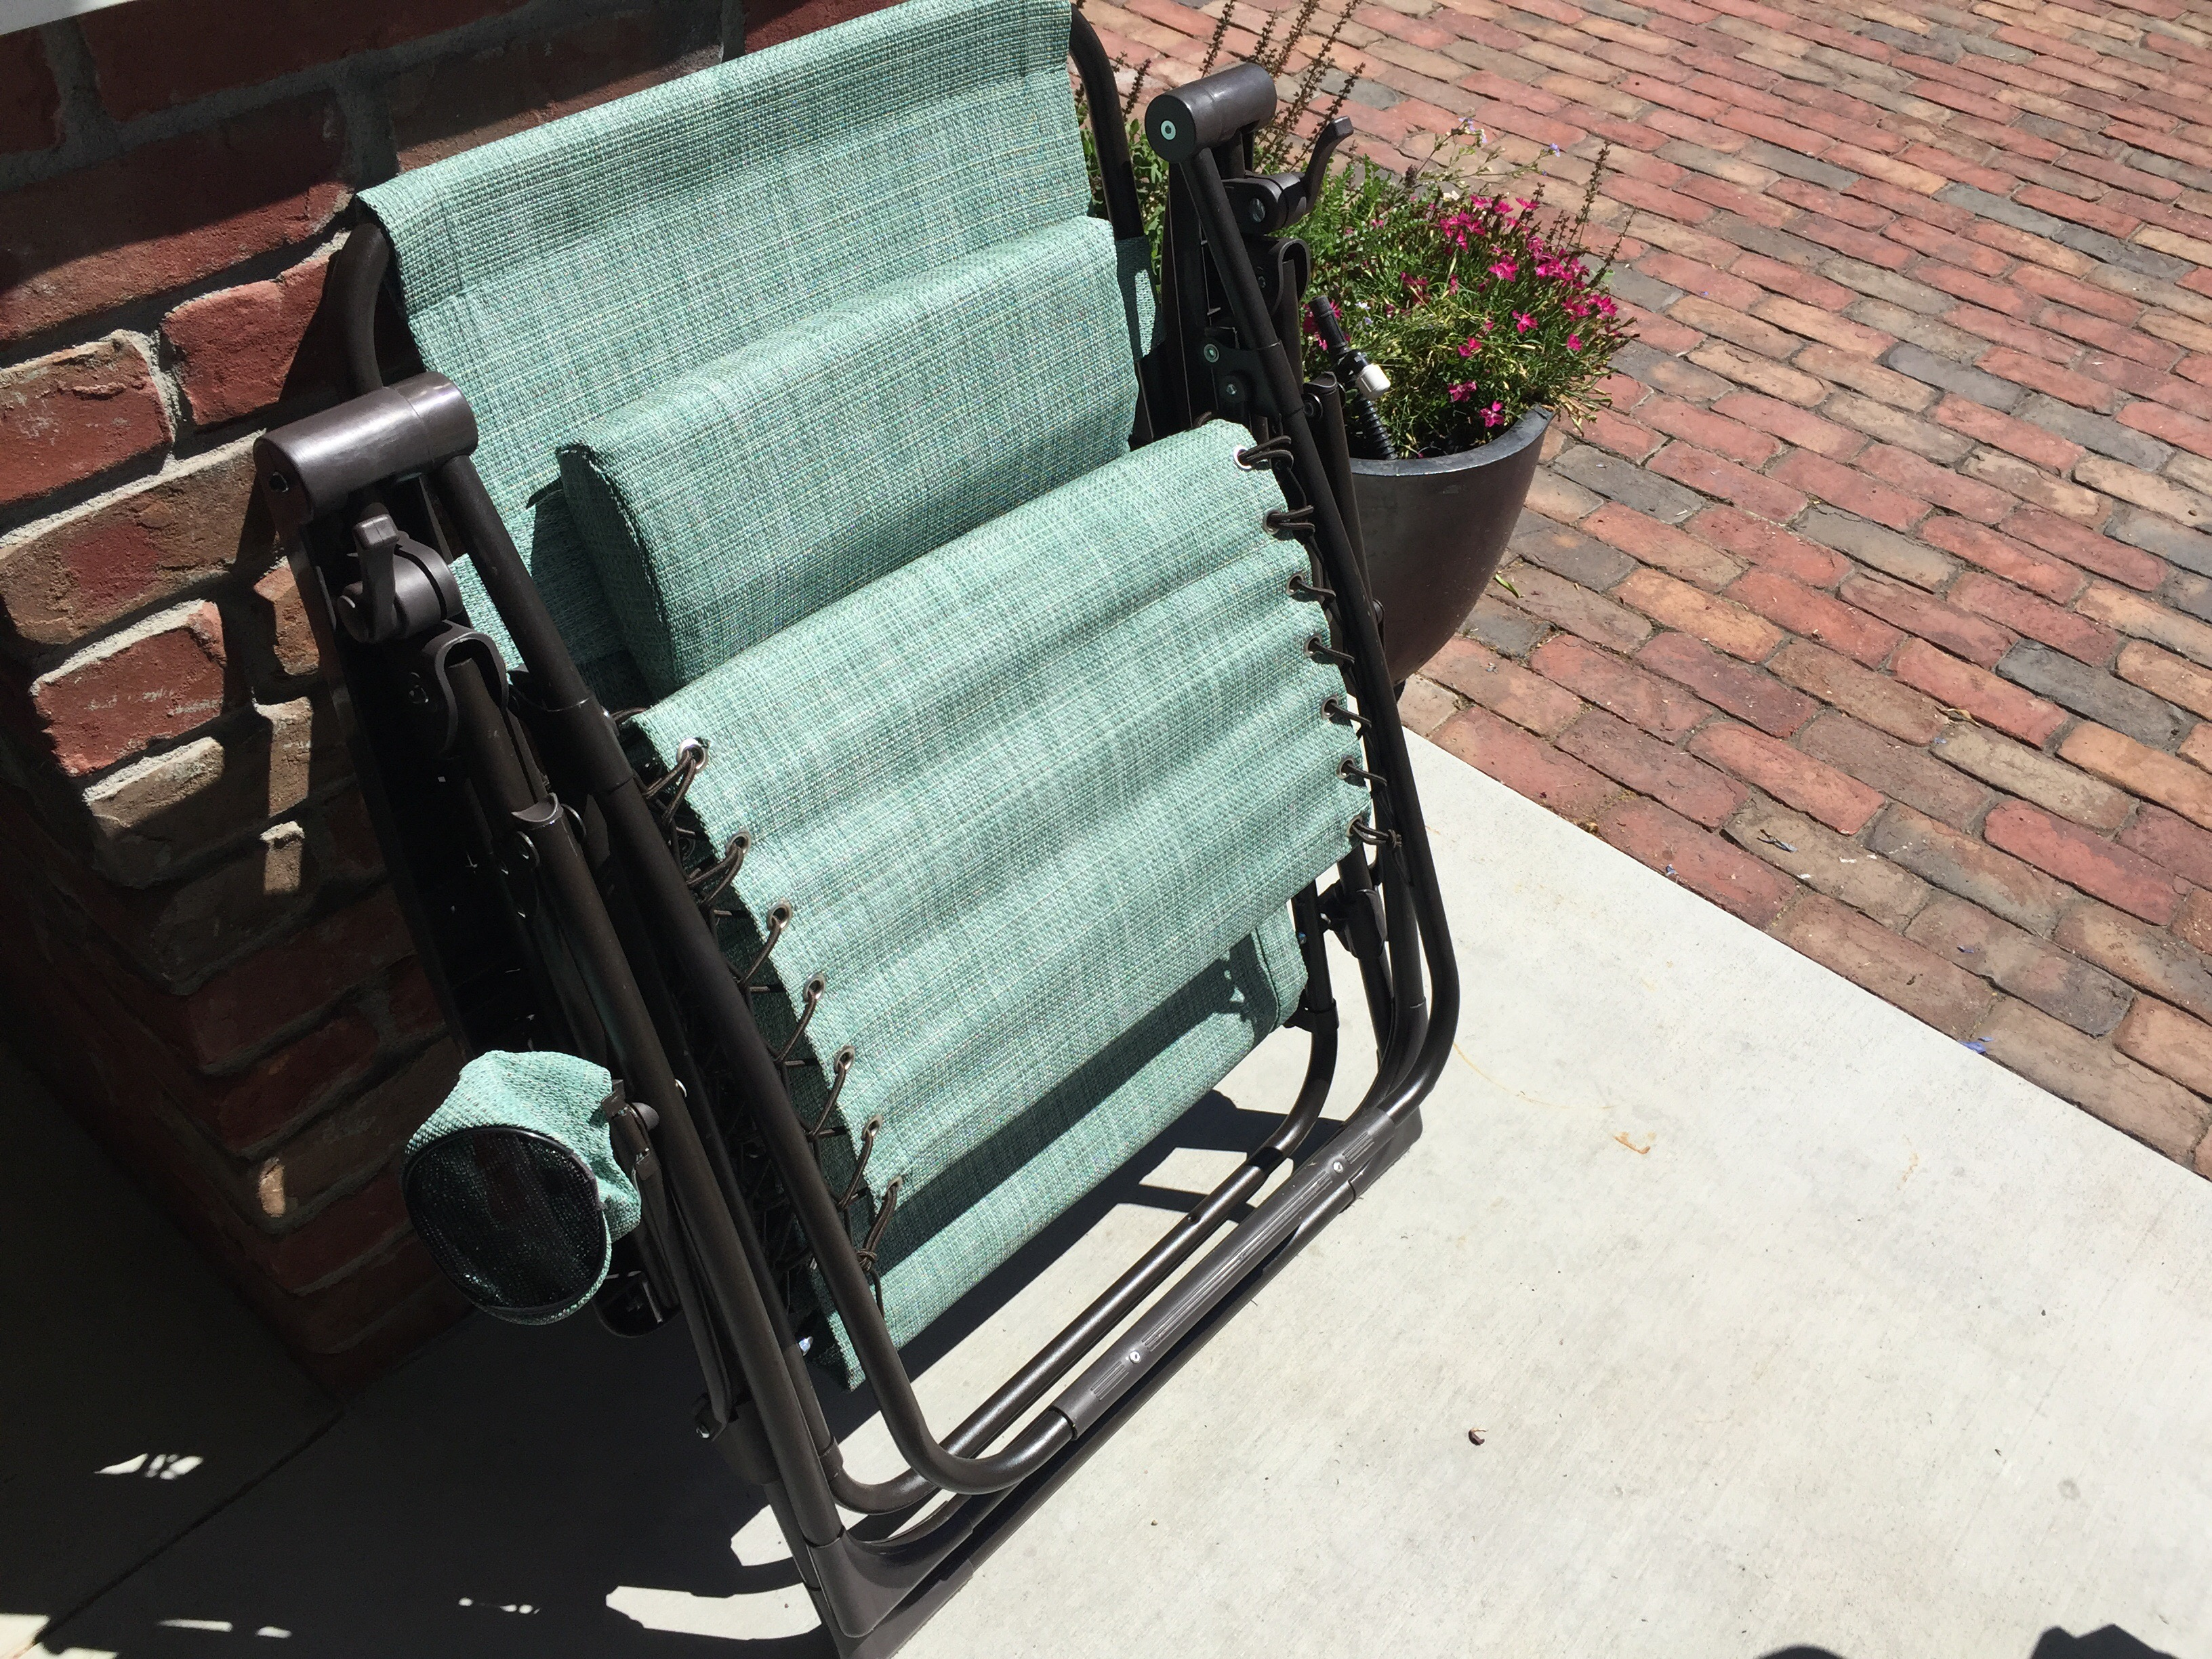 kohls zero gravity chair 3 legged camp kohl s sonoma patio antigravity only 33 99 regularly 140 i own a couple of these chairs and they are so comfortable perfect for lounging on in the backyard easily recline backwards